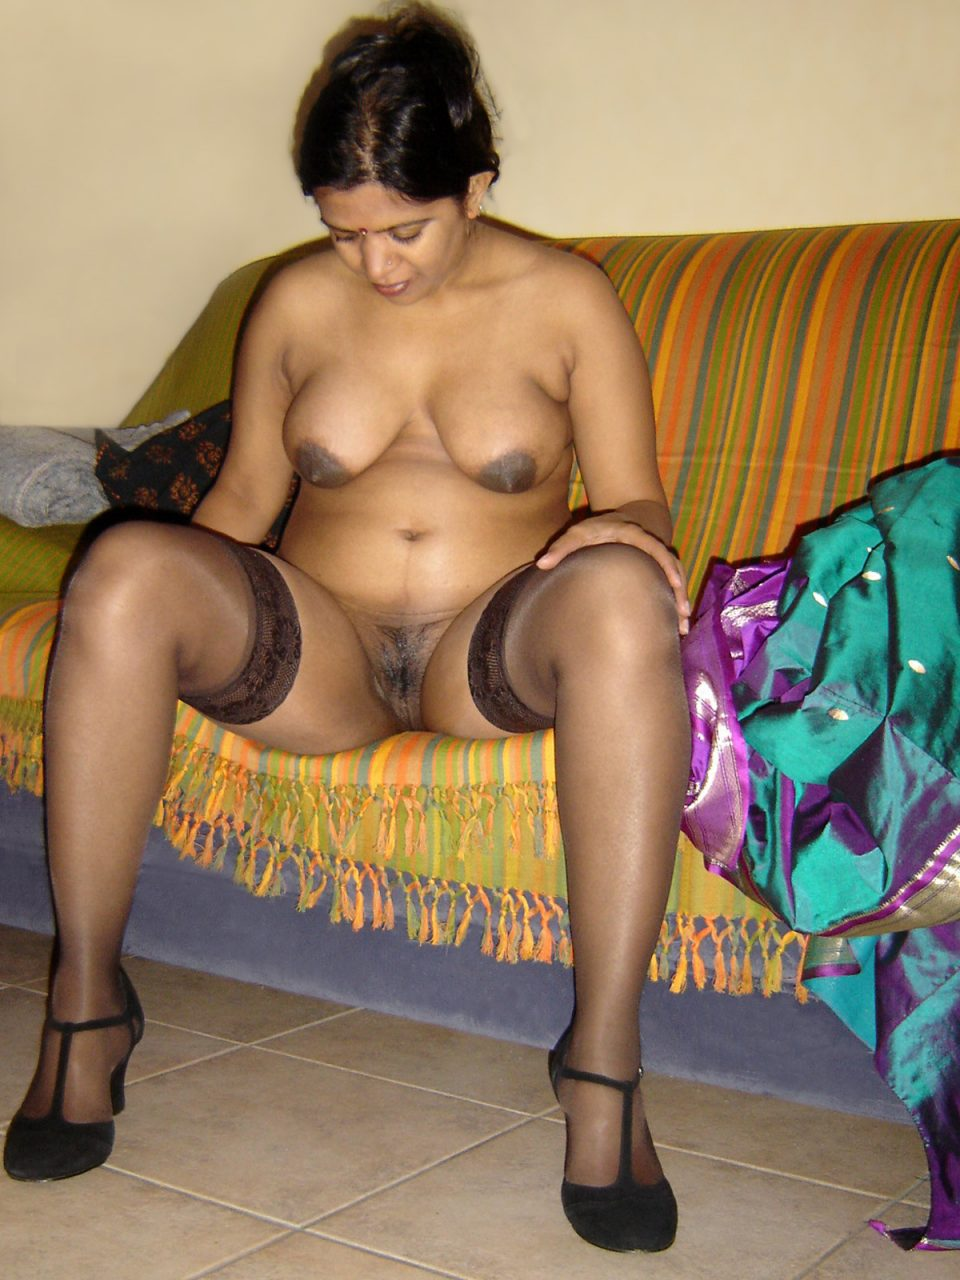 Real pornstar? Desi girls saree boobs show you